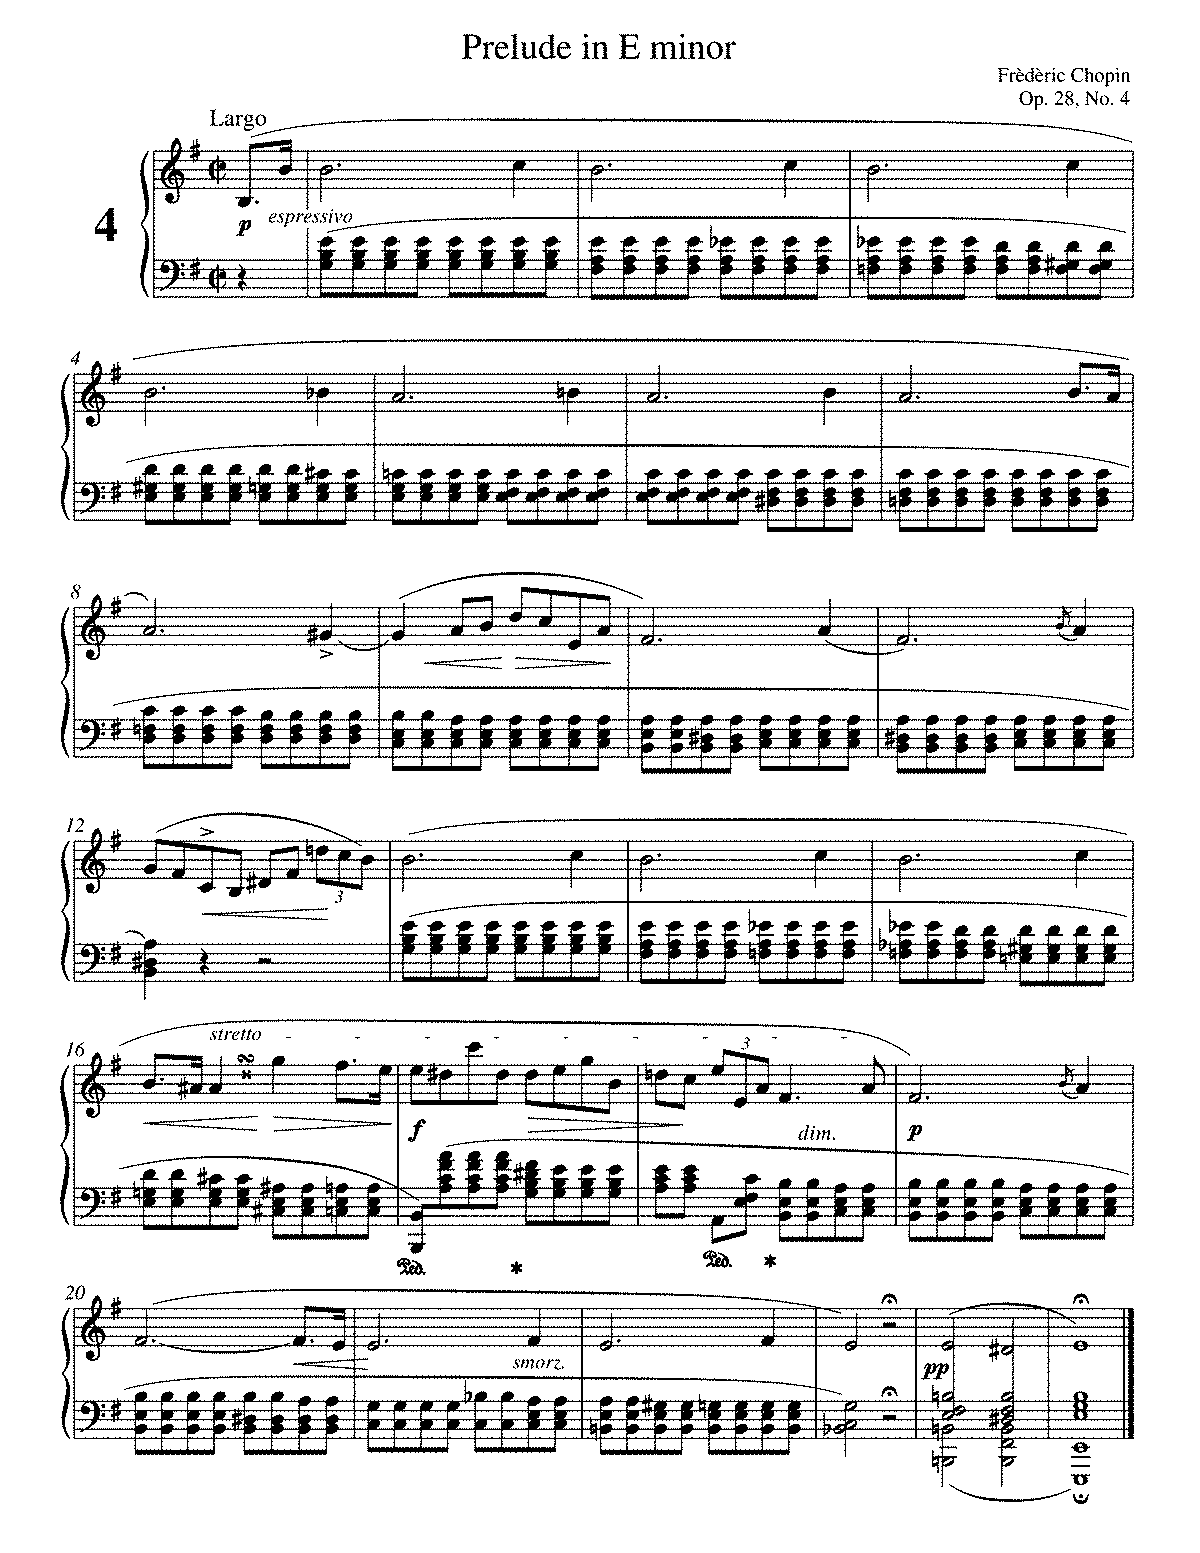 chopin prelude 15 2011-10-25  frederic chopin was one of the greatest piano composers in history fortunately for guitarists many of his pieces have been transcribed chopin did not confine himself to one key.